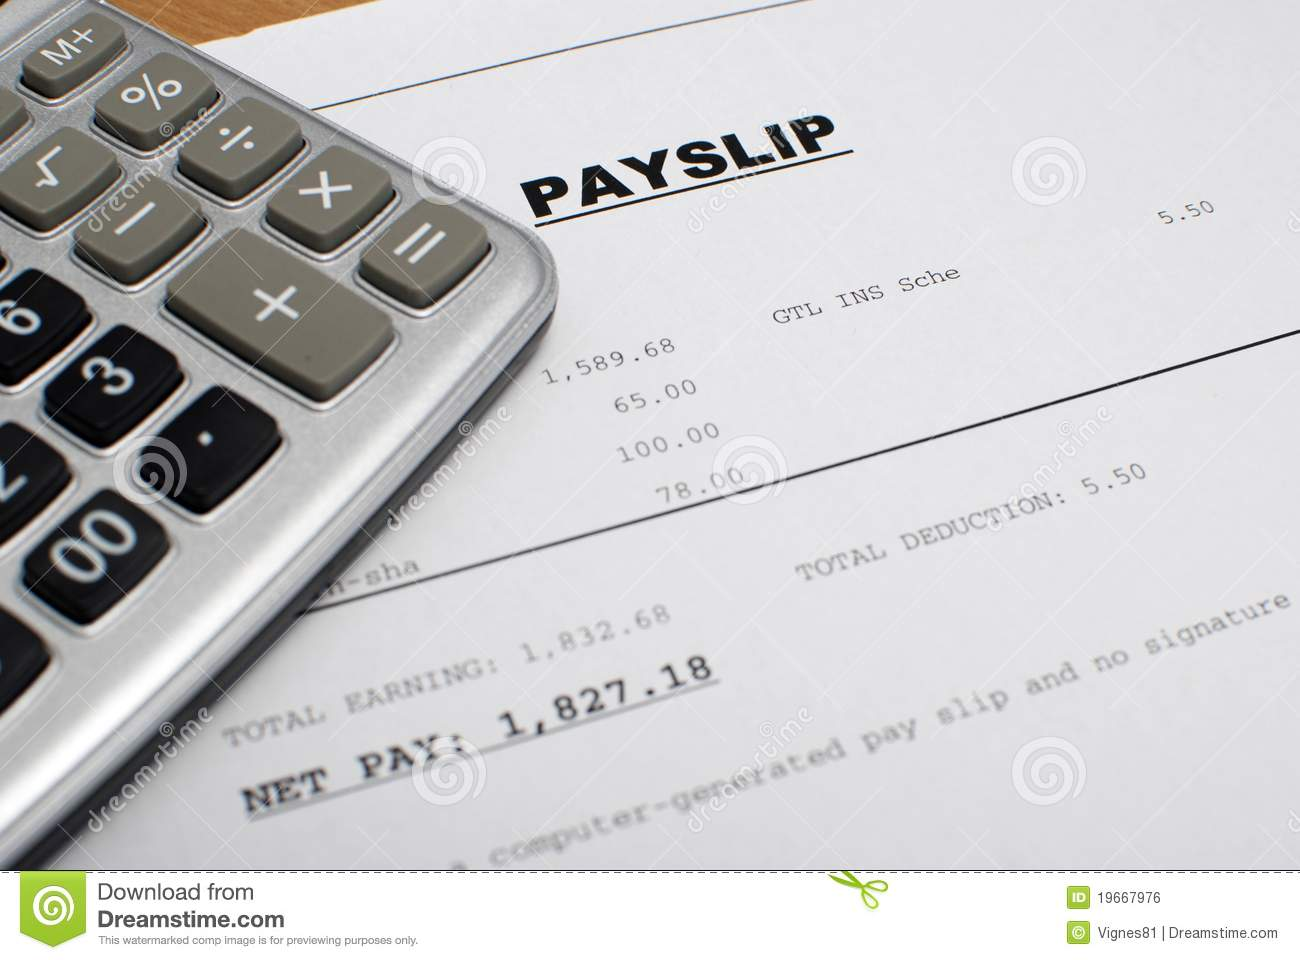 Download Payslips compliance officer resume samples – Download Payslips